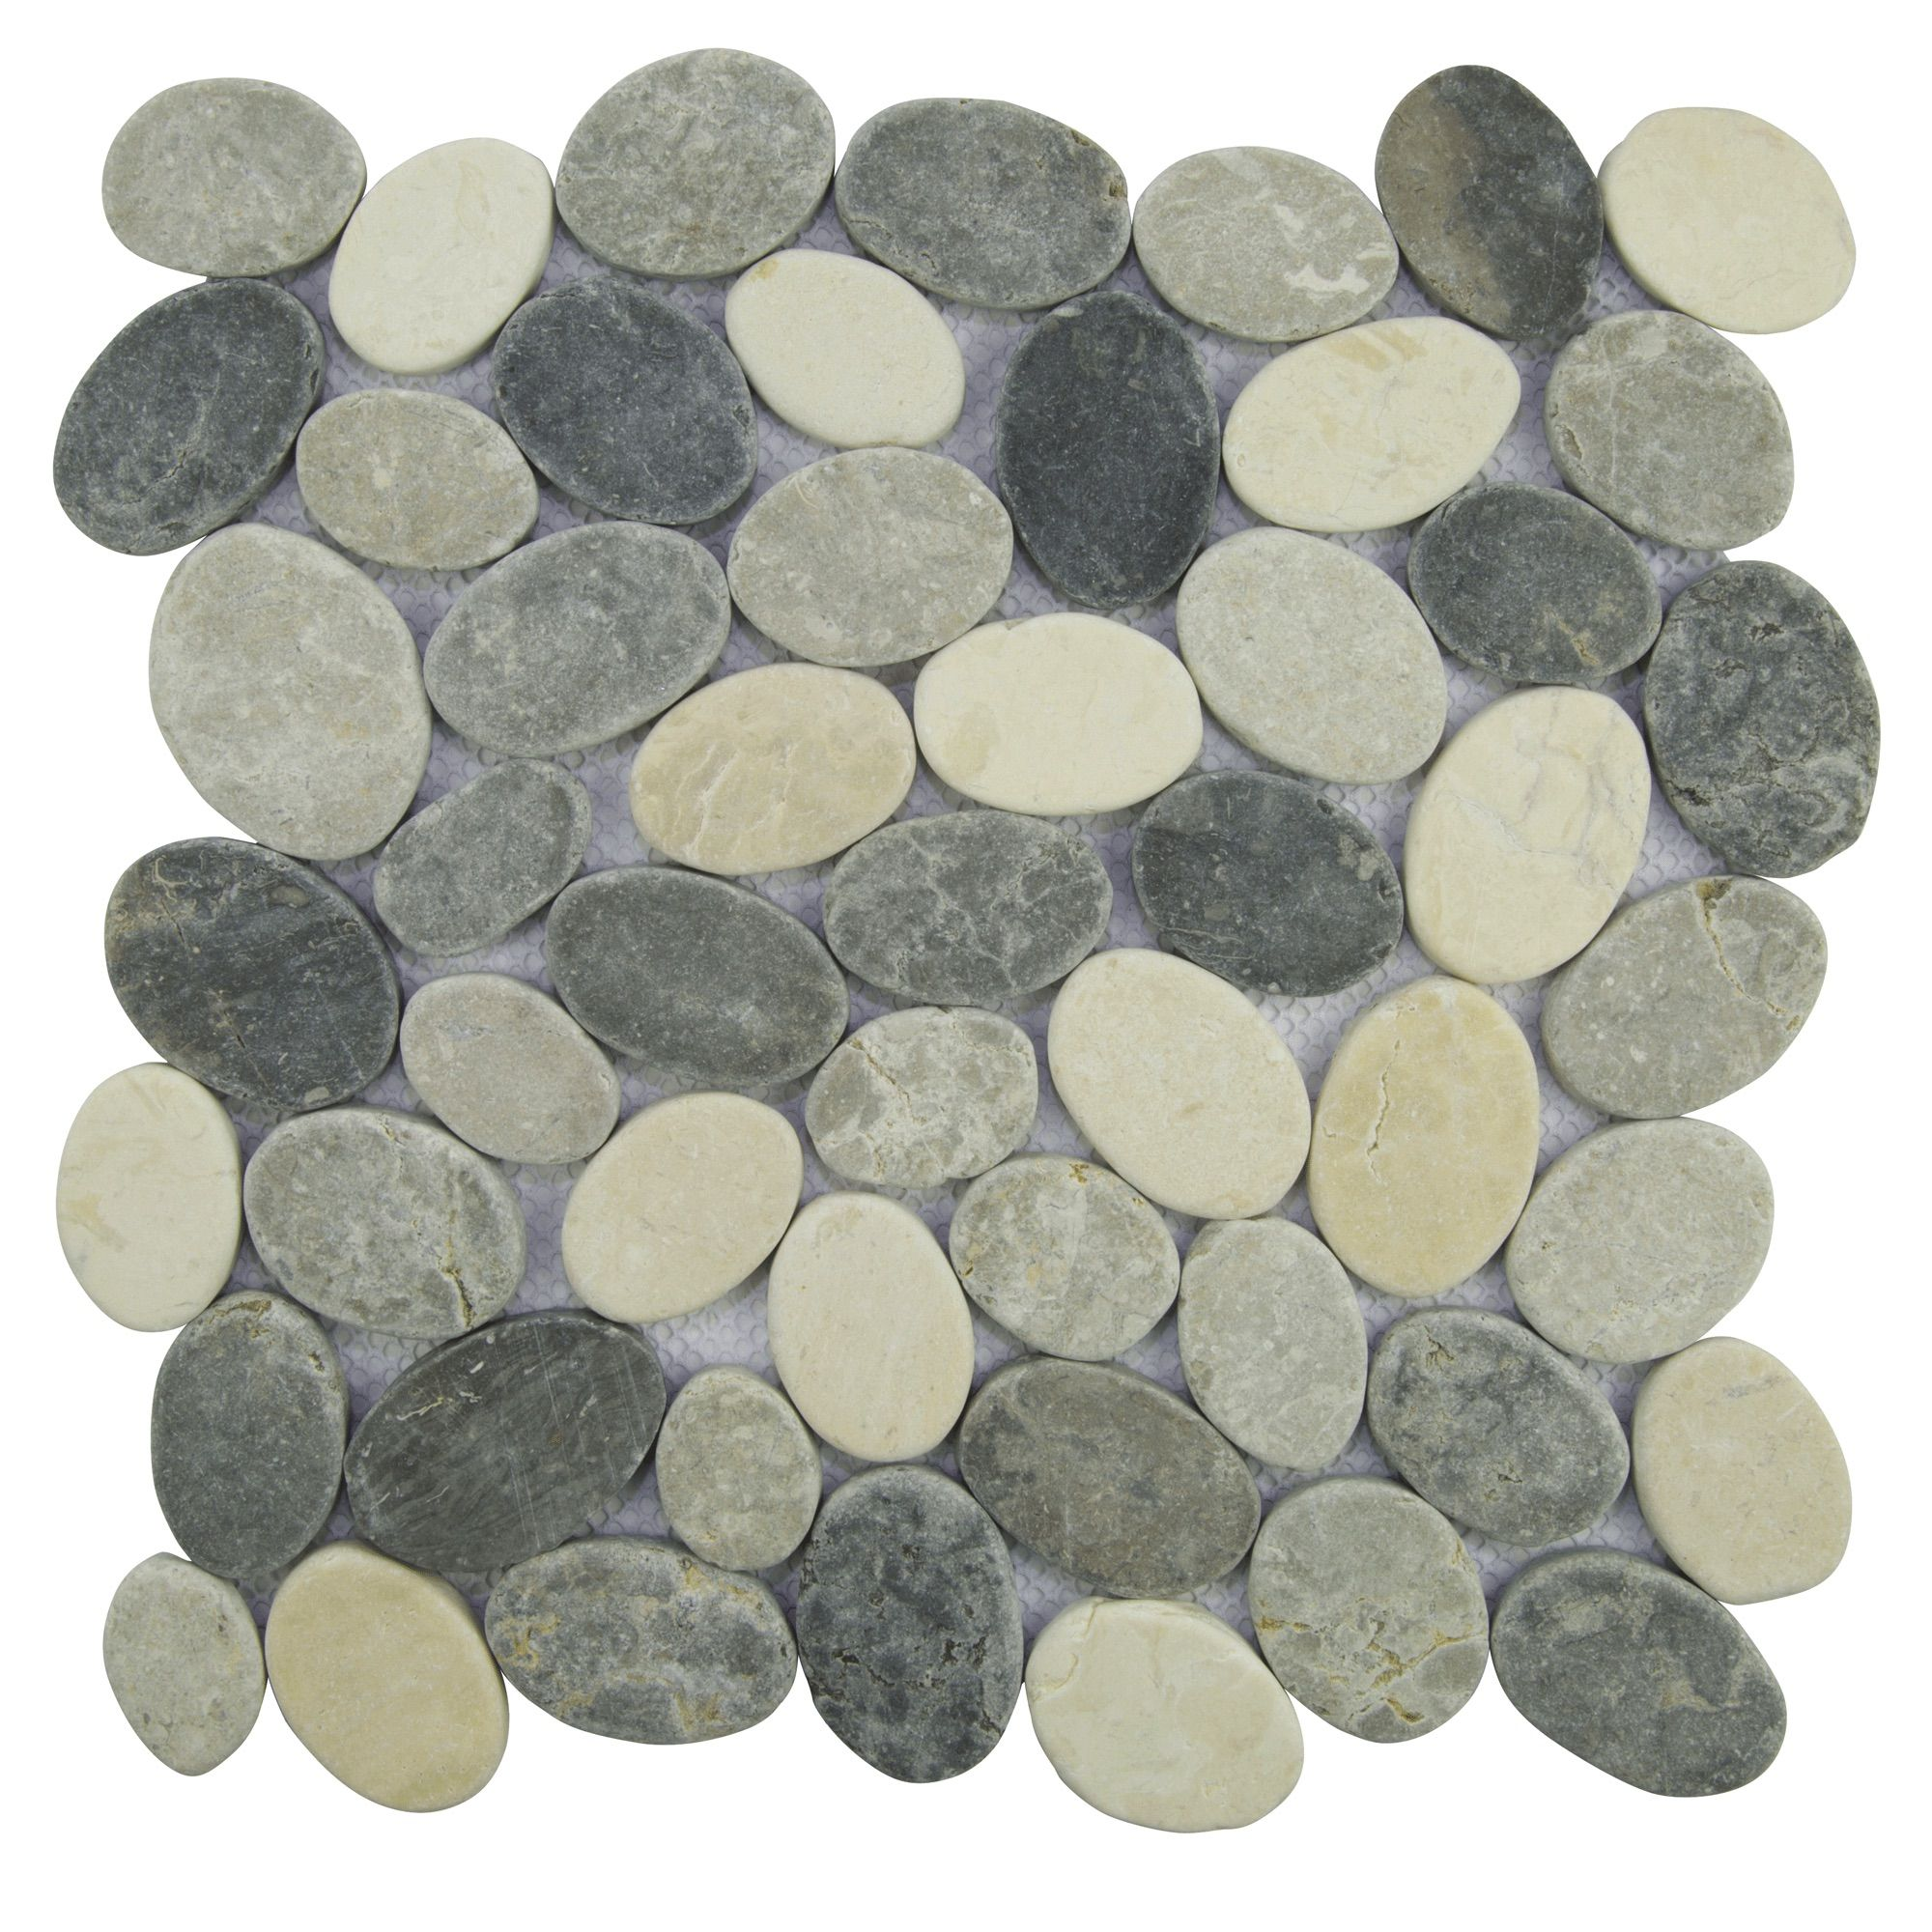 Easy To Install Mesh Backed Interlocking Natural Stone Tile Made Out Of High Quality Indonesian Marble In White Marble Mosaic Stone Mosaic Tile Stone Mosaic